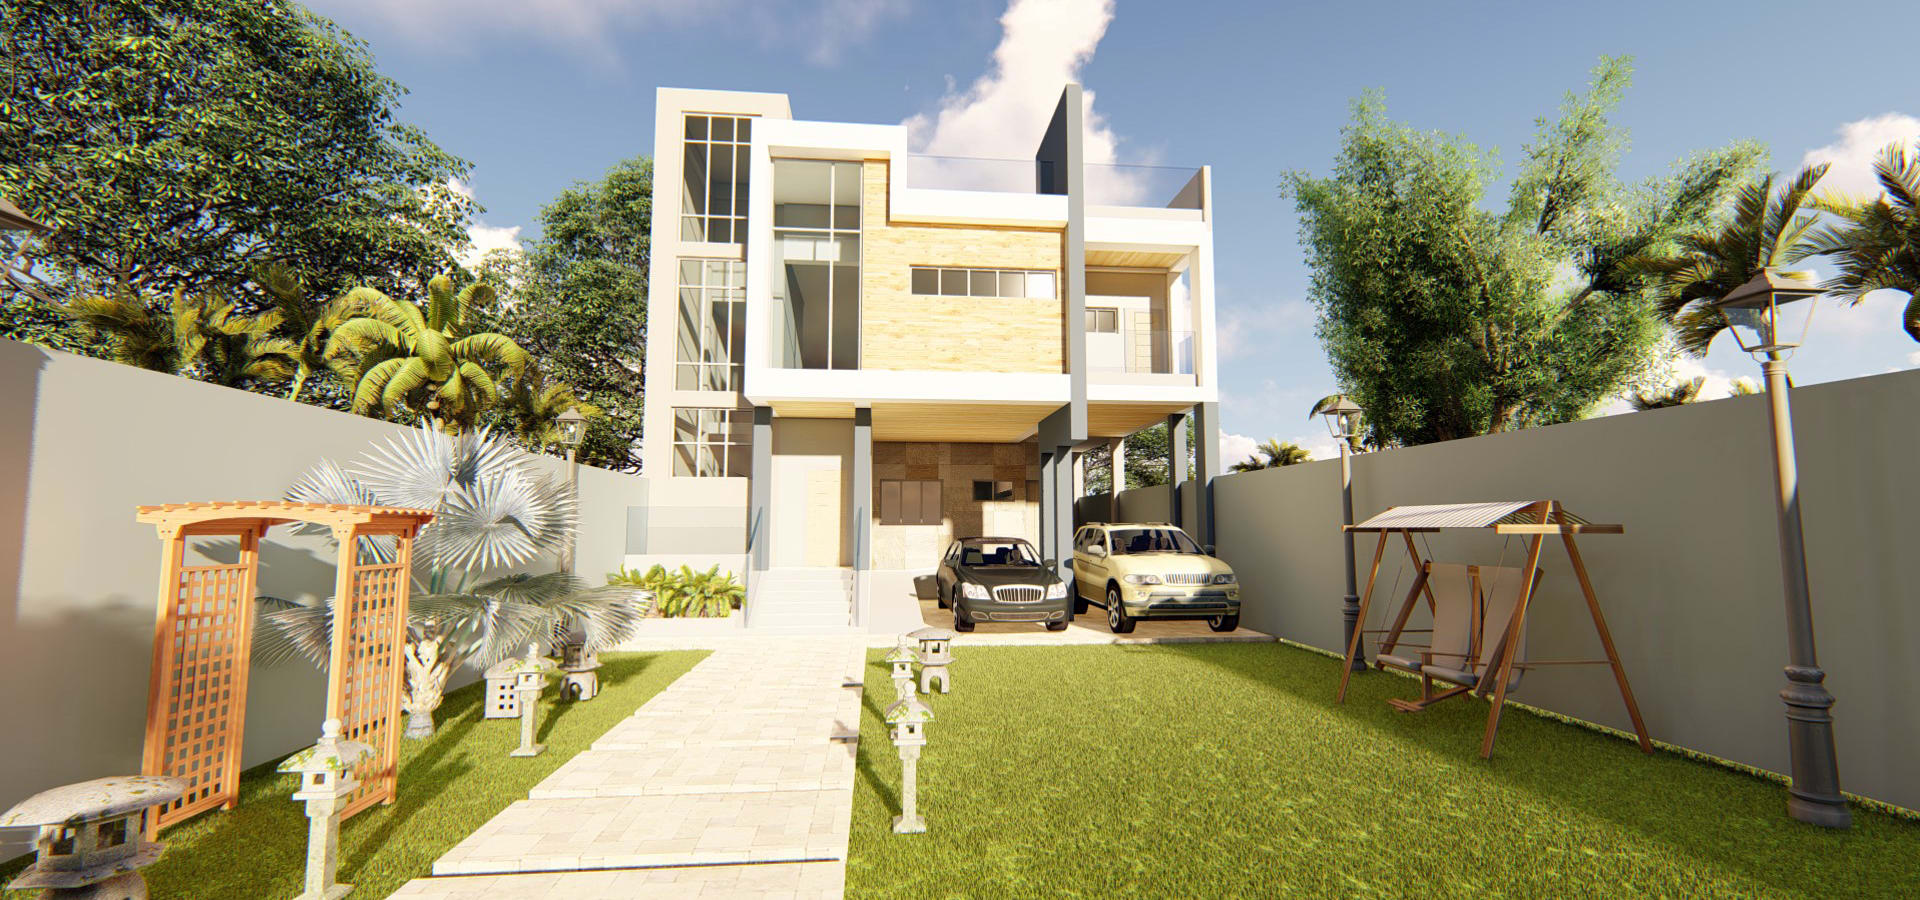 Sindac Architectural Design and Consultancy